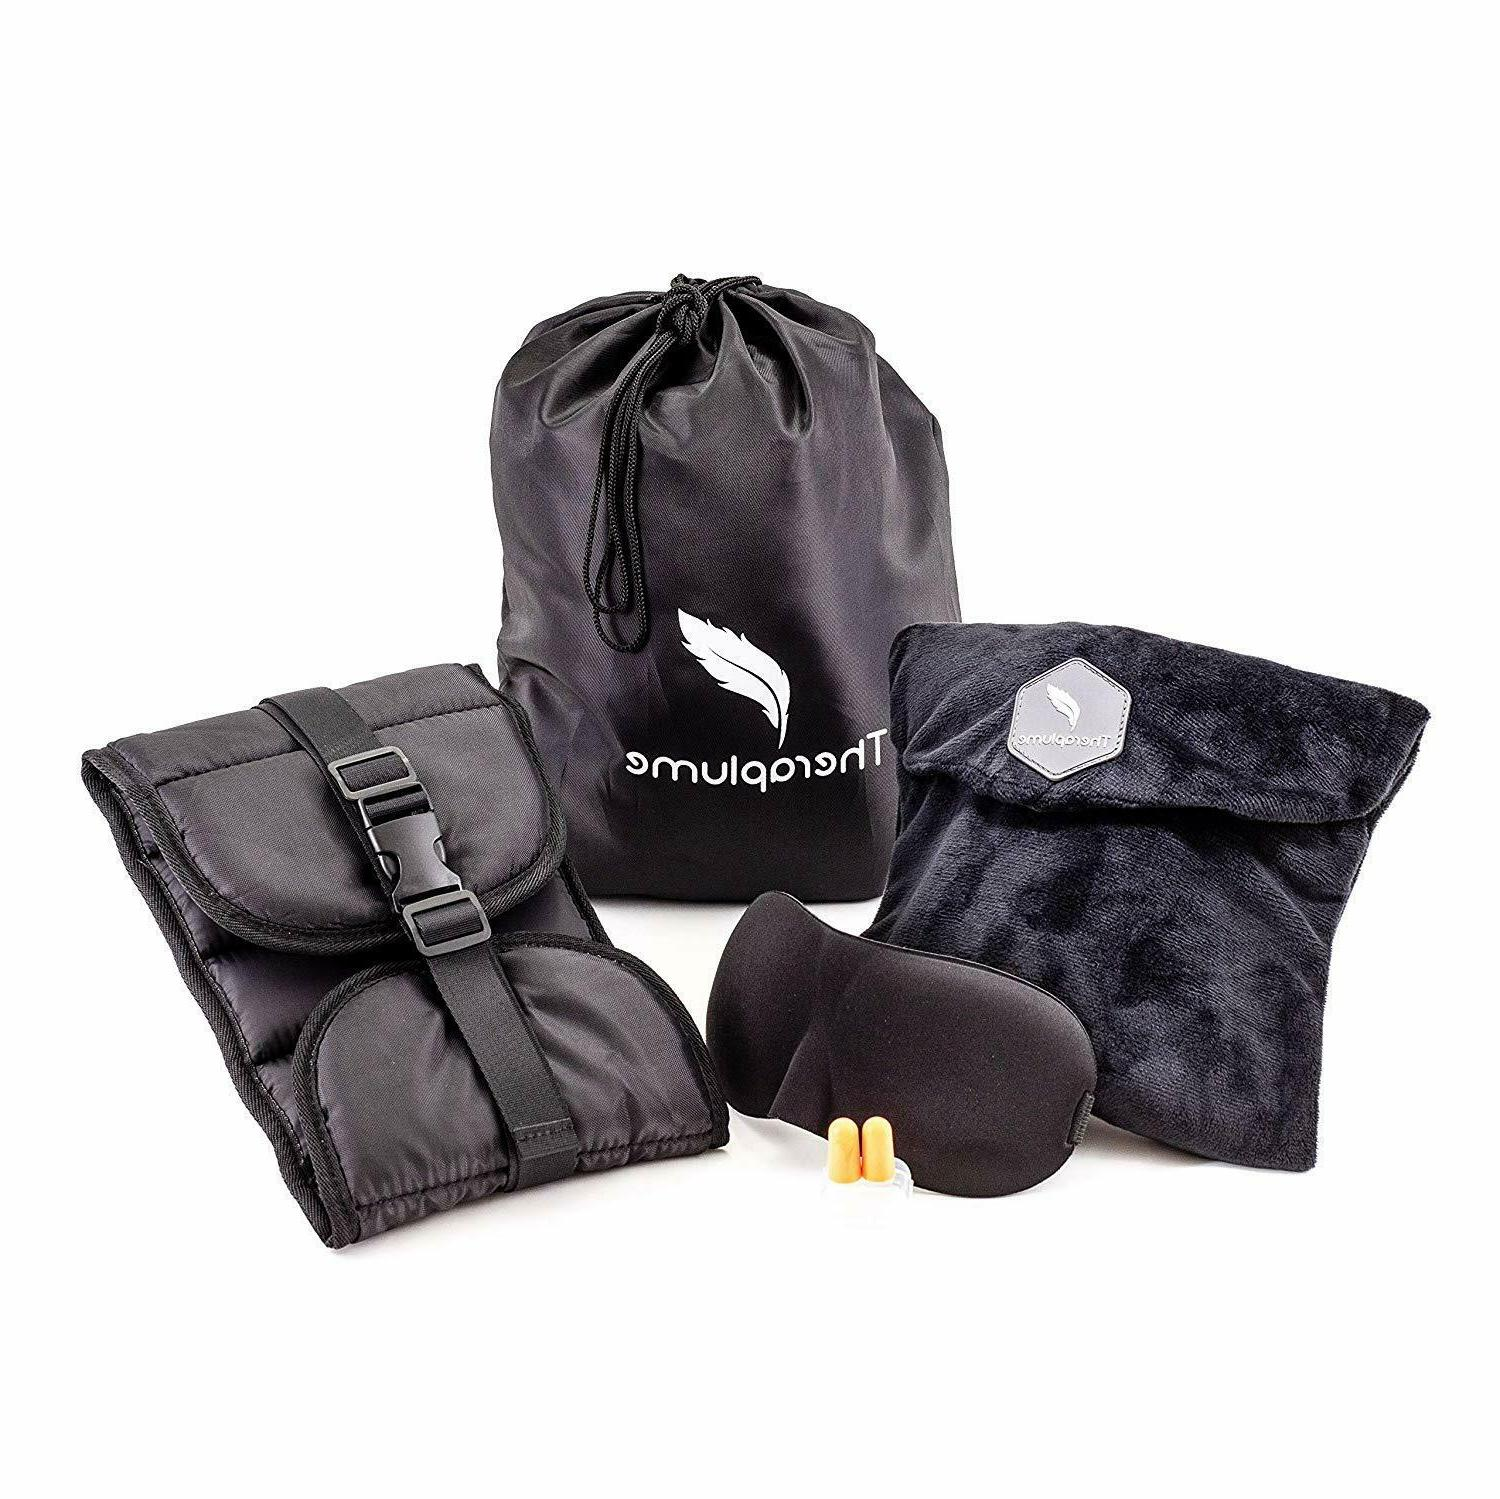 40 msrp scarf pillow and travel accessories